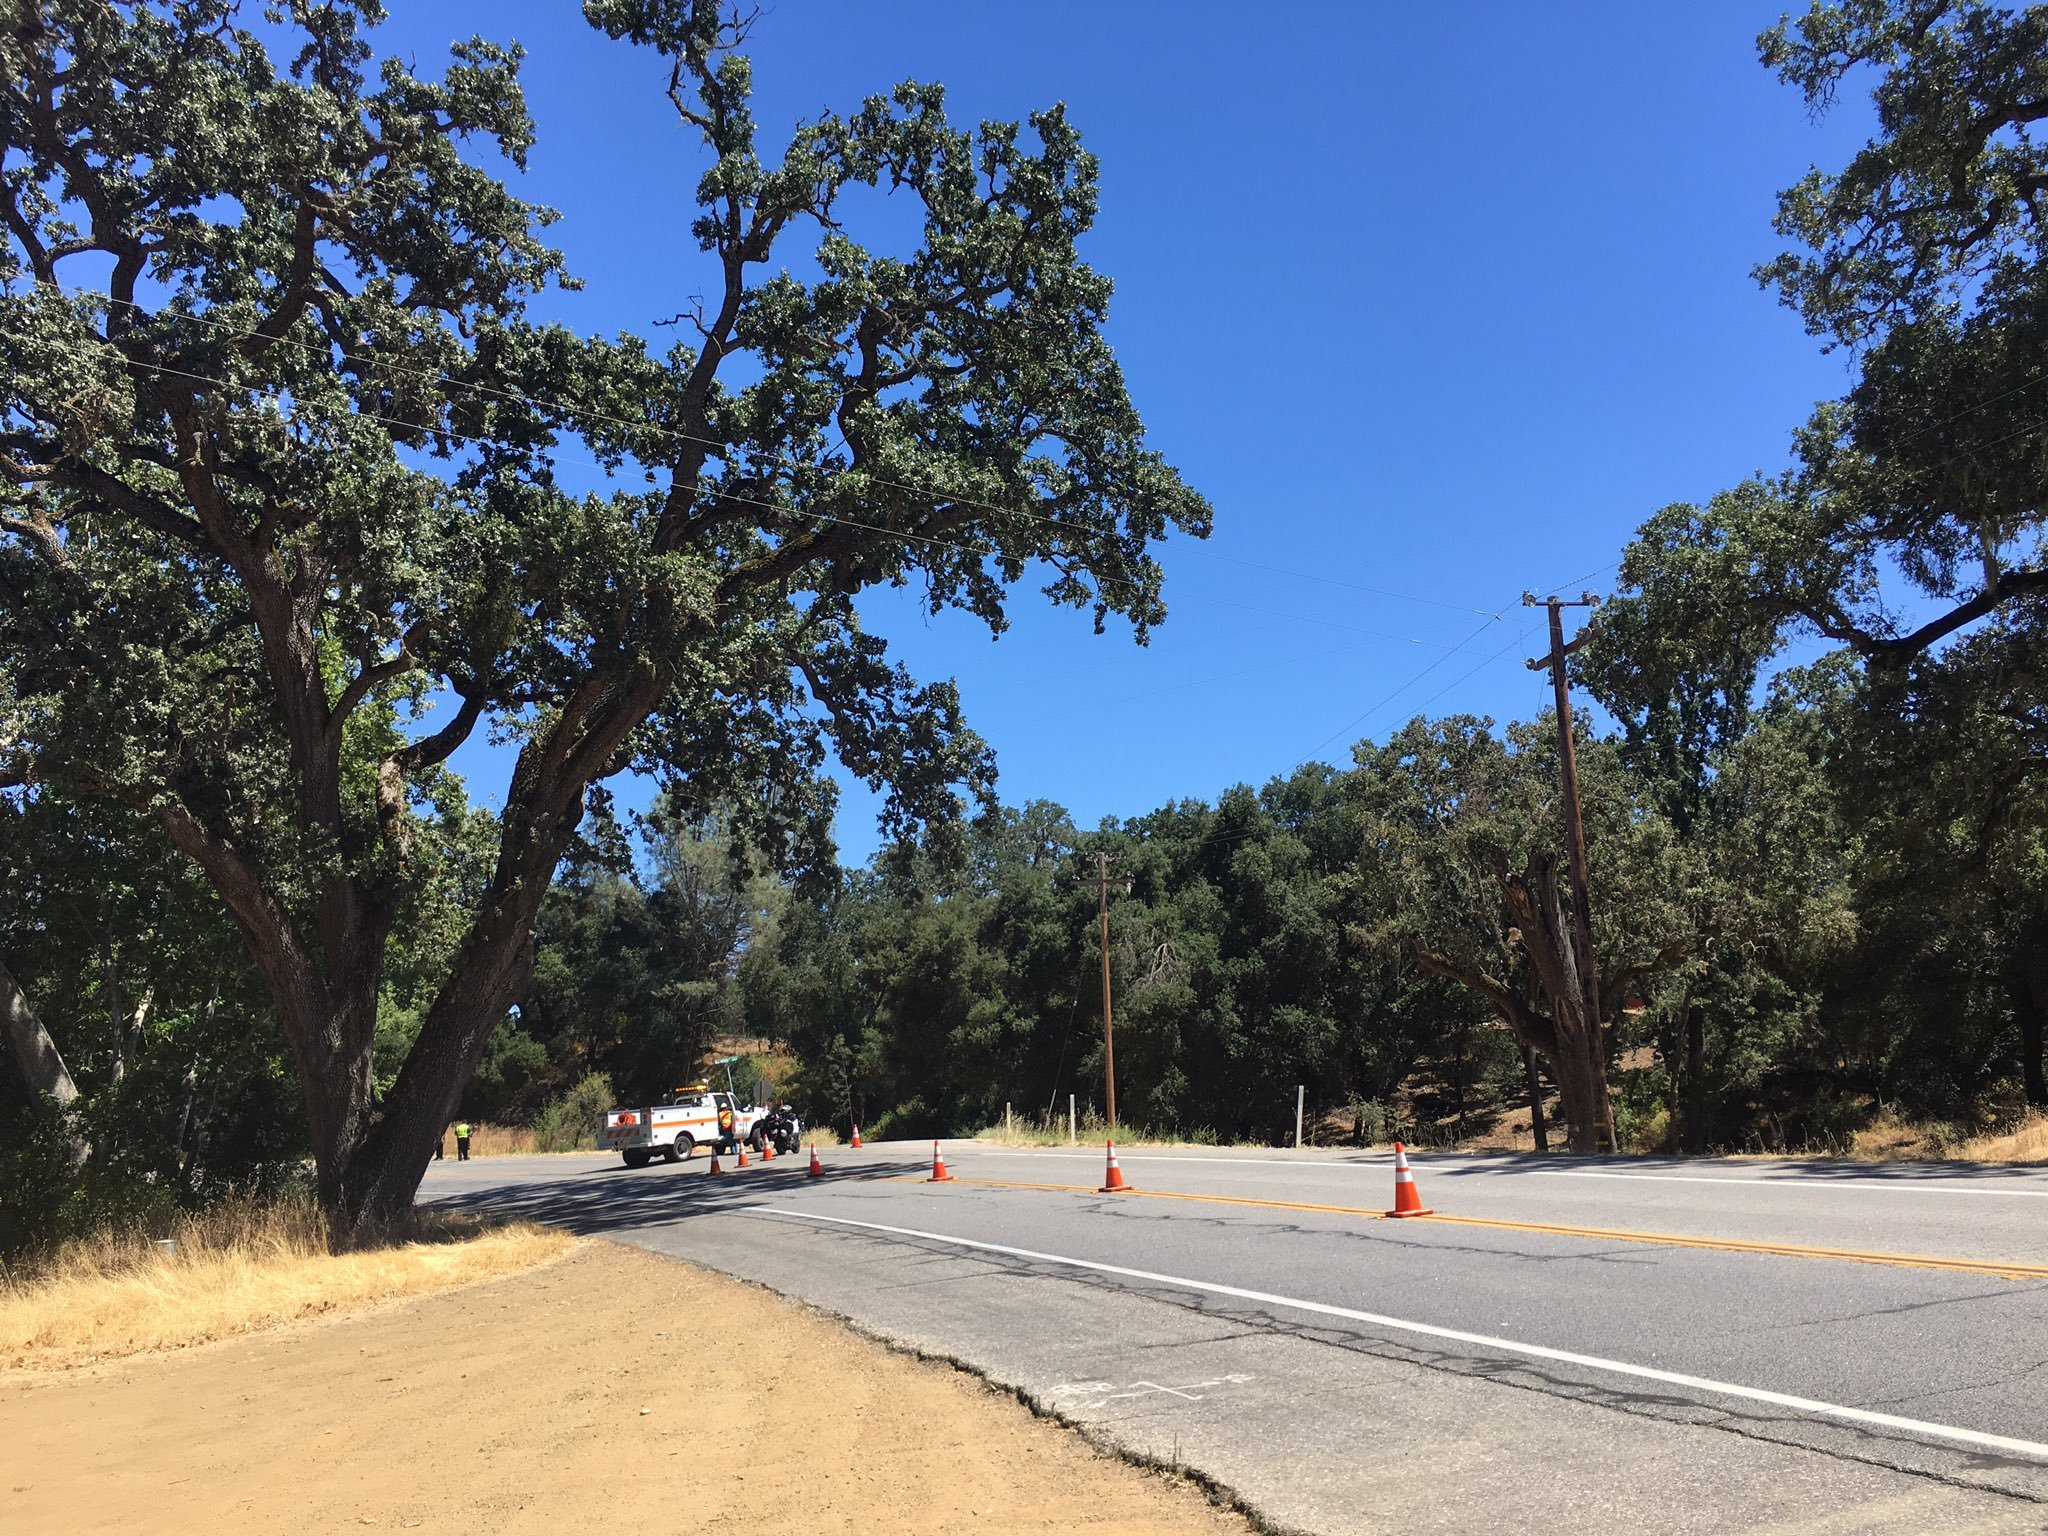 Police investigate a fatal crash on Highway 41 West in Atascadero. (KSBY photo)